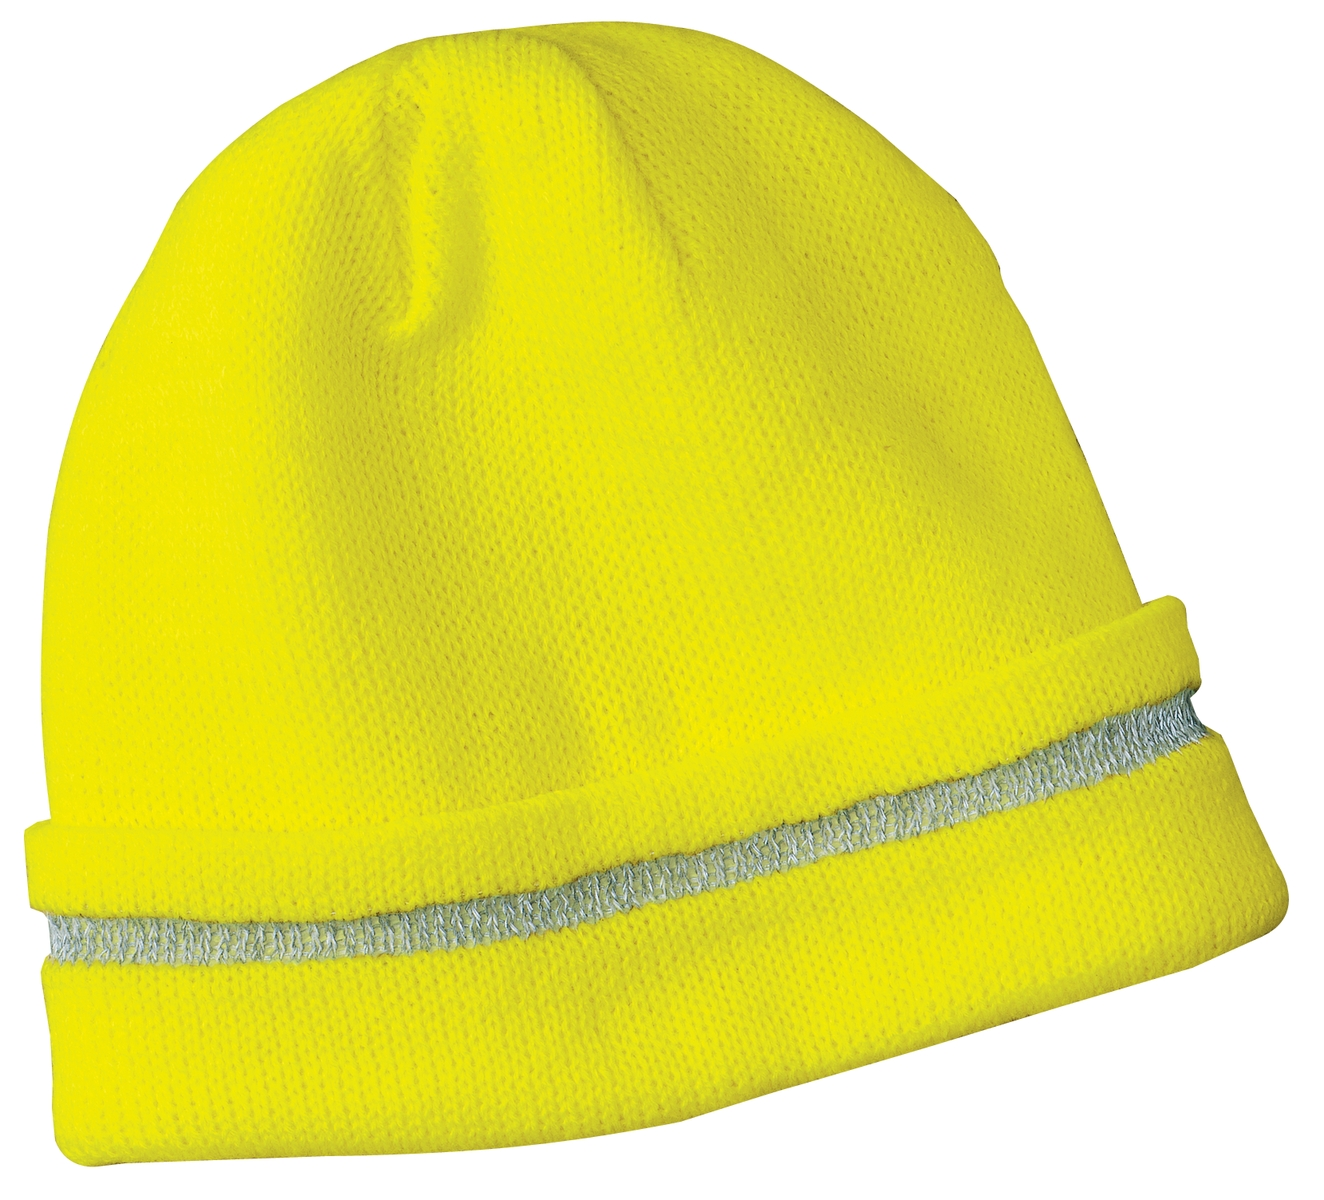 CornerStone ®  - Enhanced Visibility Beanie with Reflective Stripe.  CS800 - Safety Yellow/ Reflective